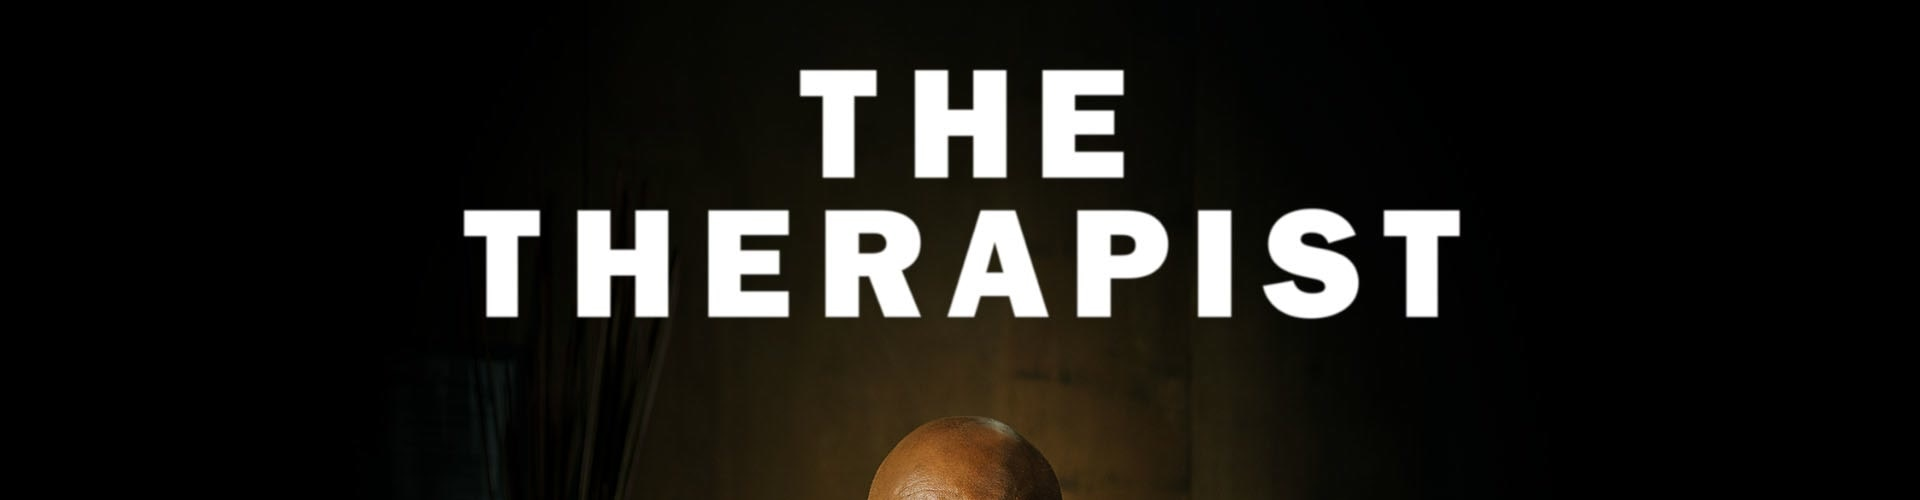 Watch The Therapist Online